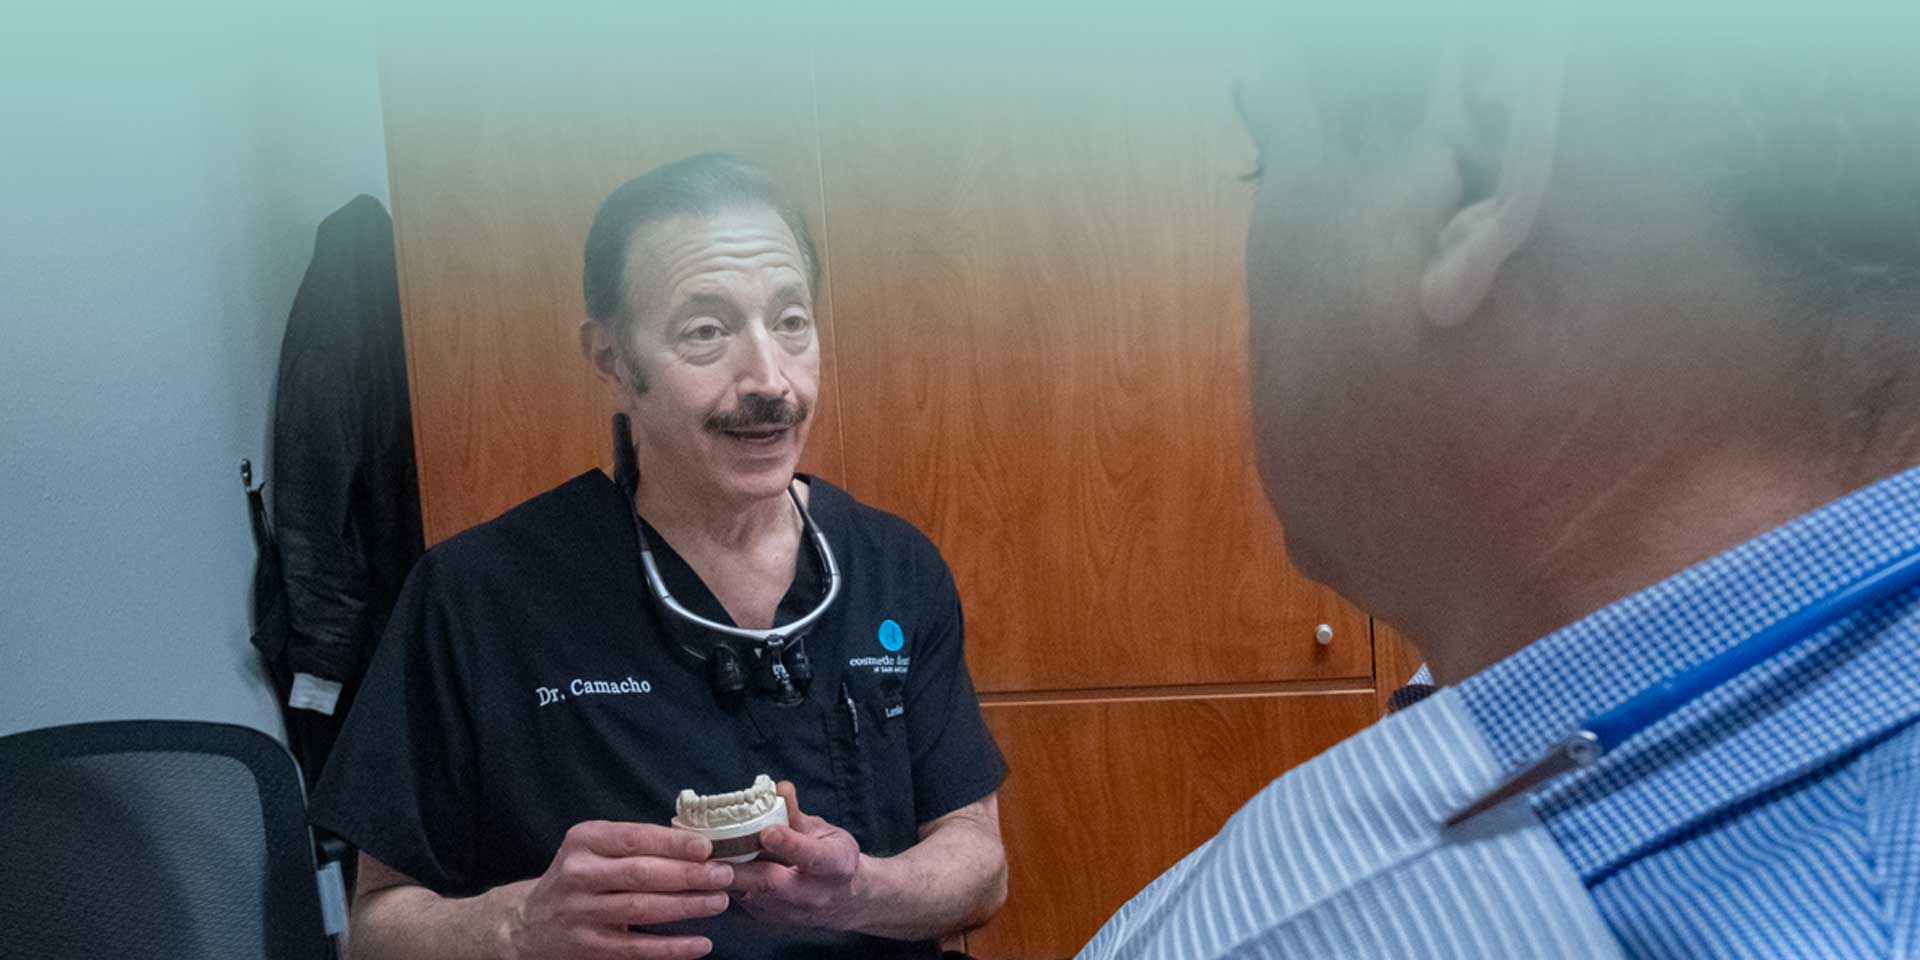 Dr. Edward Camacho explaining a patient with help of a dental prosthetic